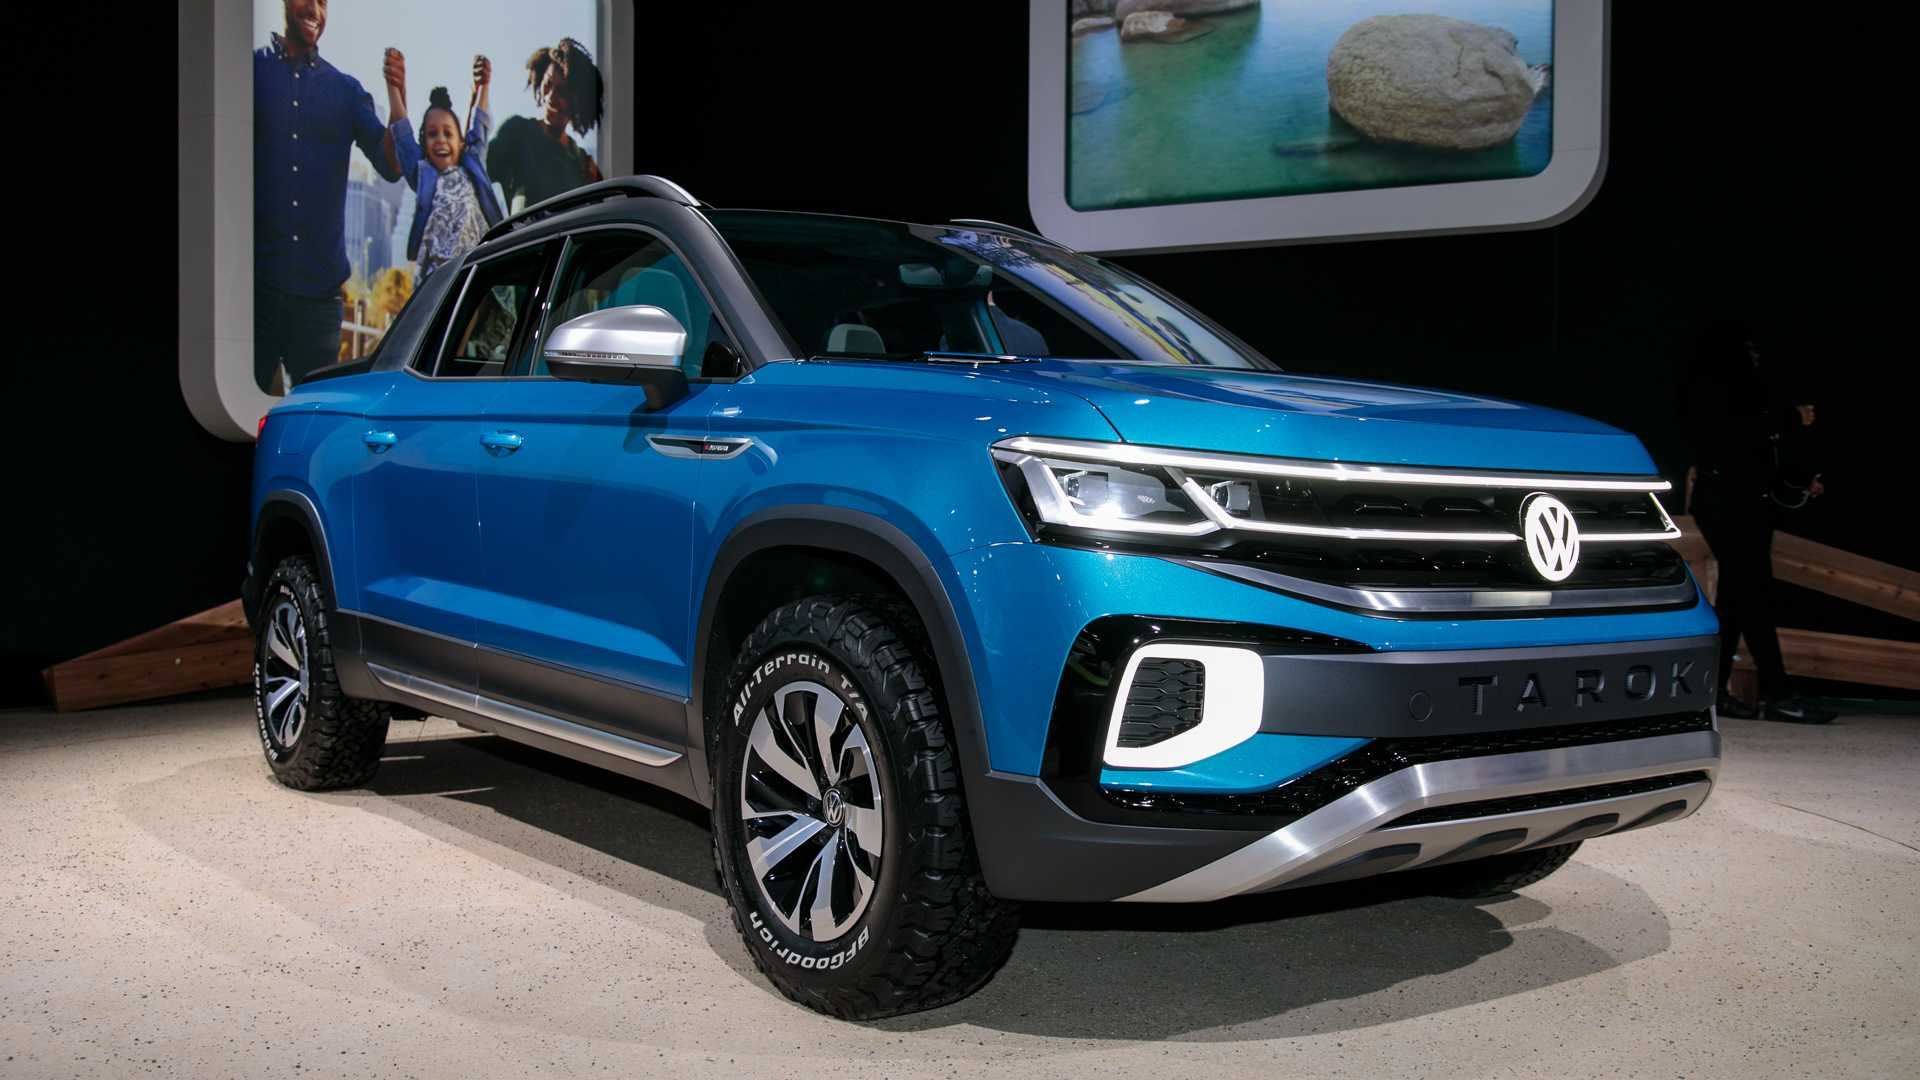 2020 Volkswagen Tarok Price, Redesign, Review, And Specs >> Vw Tarok Concept Revealed As Pickup With Transforming Bed